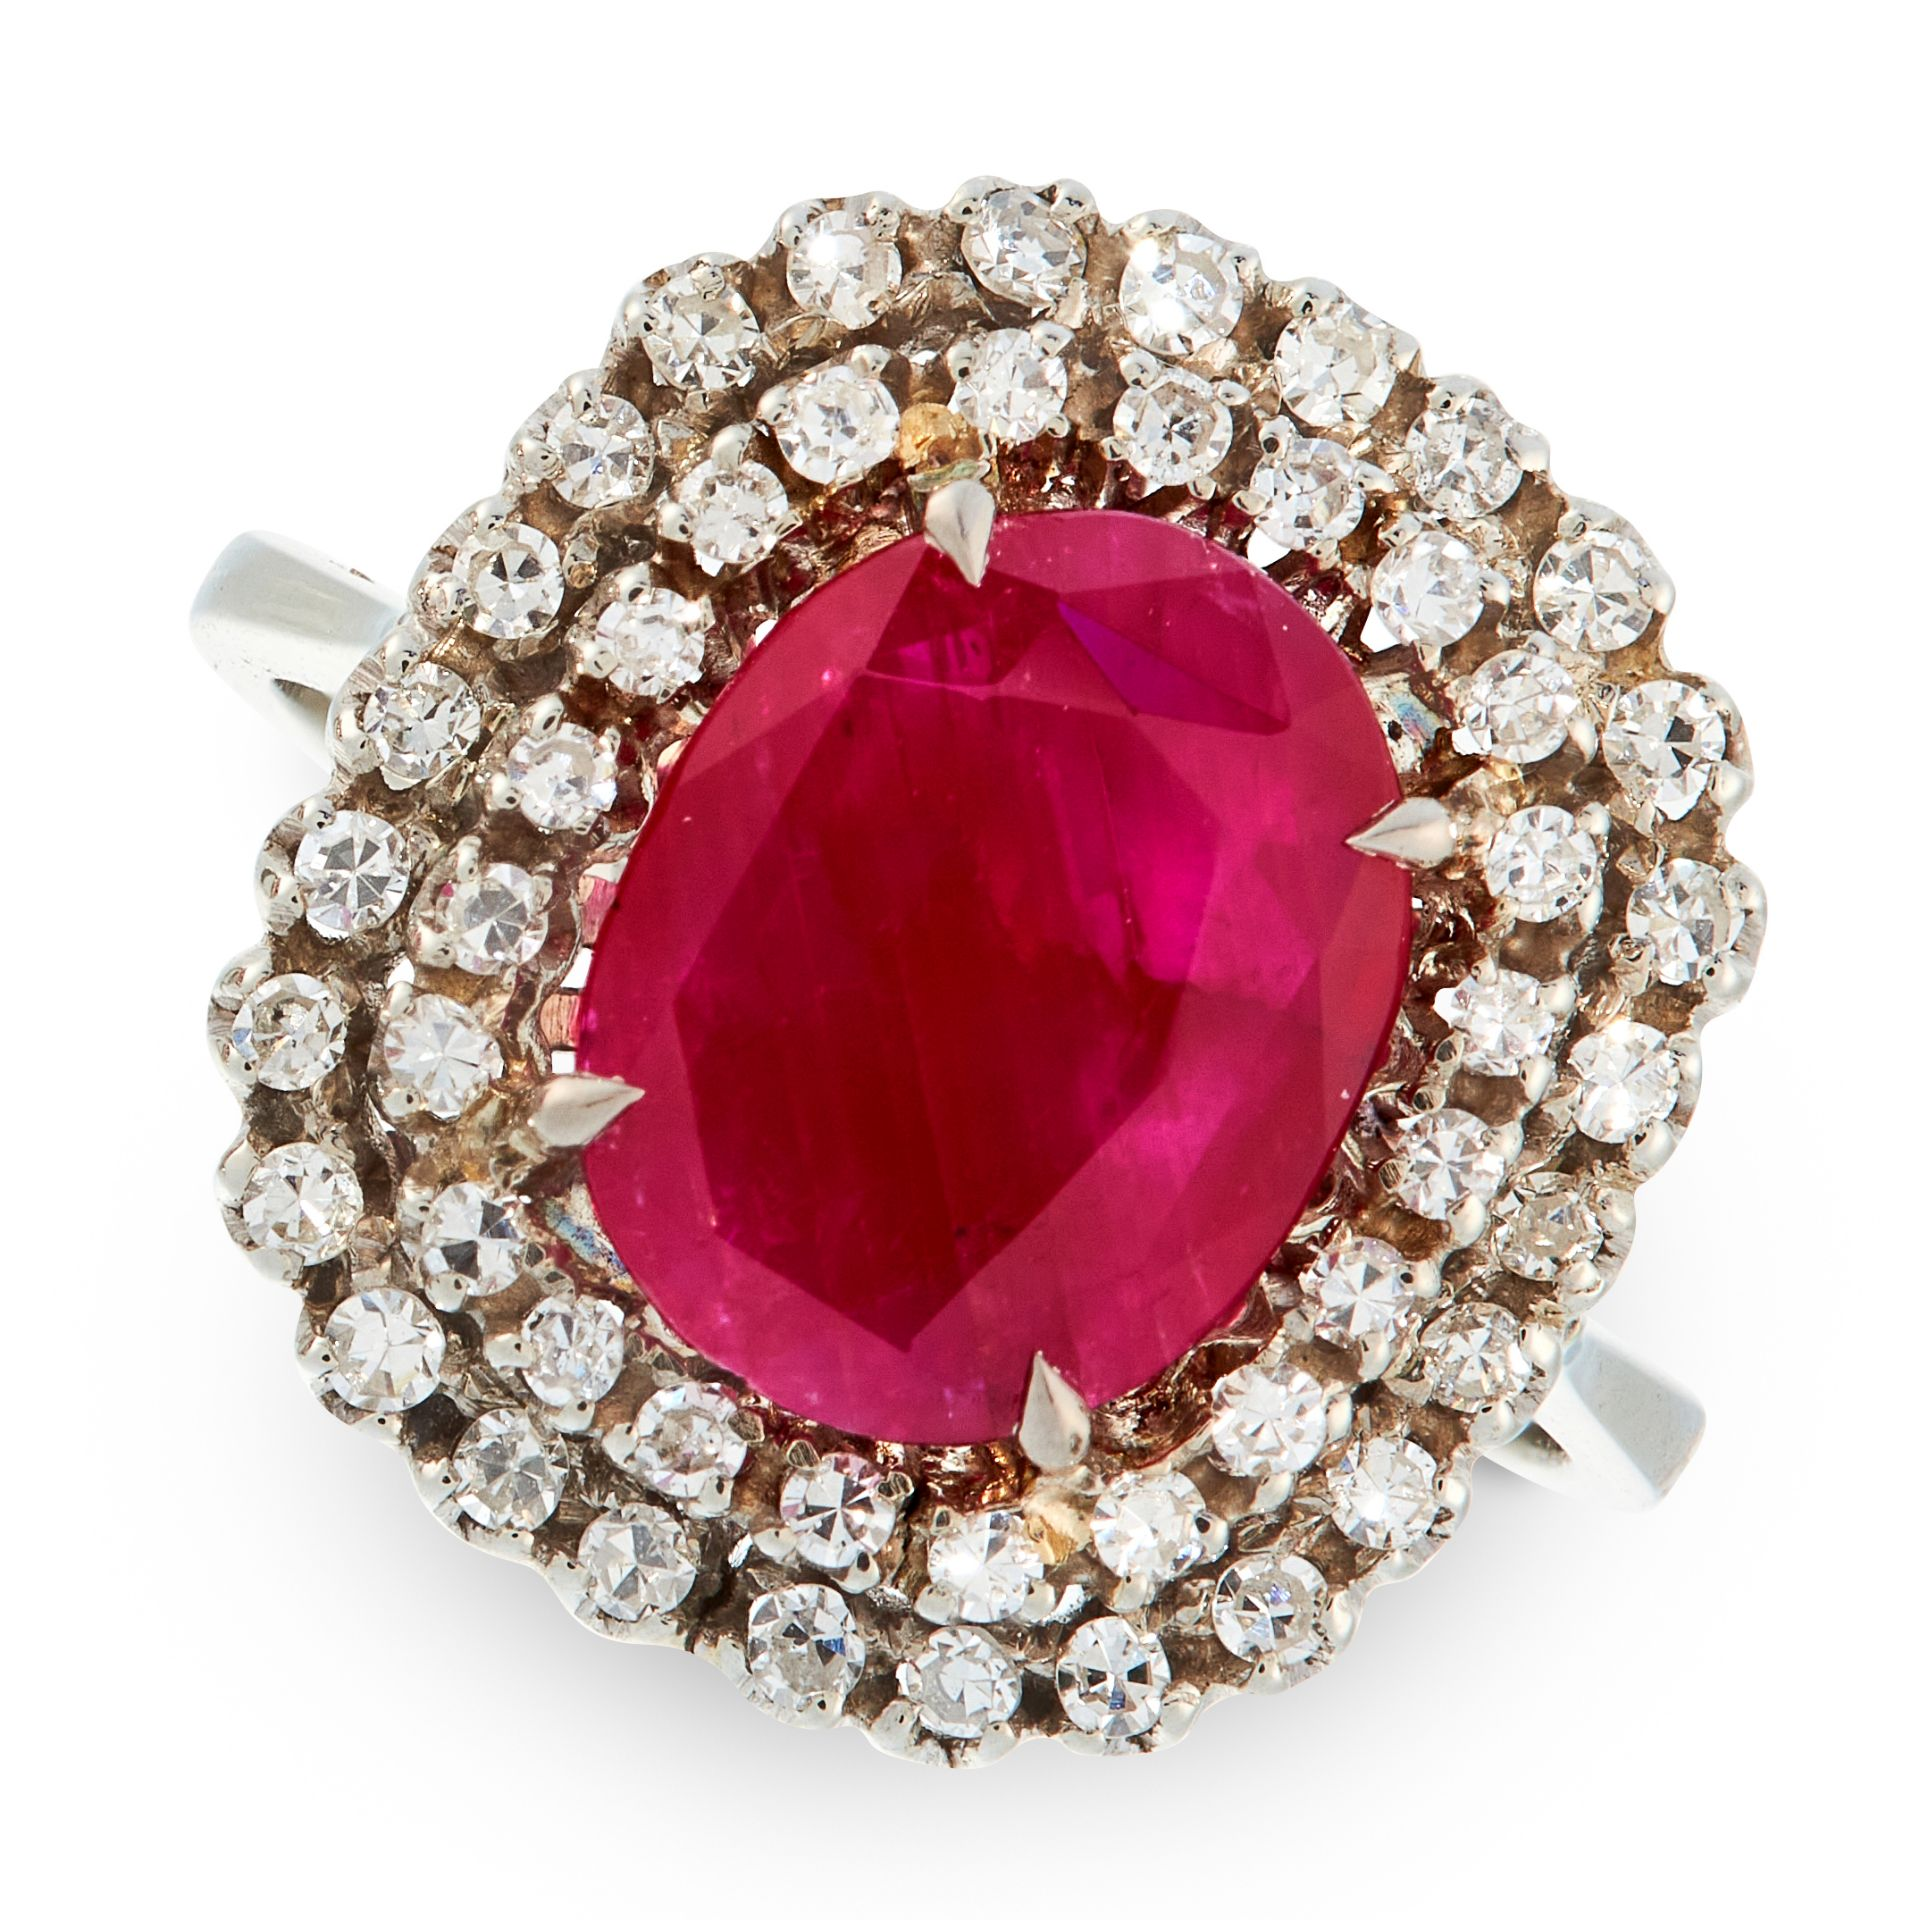 A BURMA NO HEAT RUBY AND DIAMOND RING in 18ct white gold, set with a cushion cut ruby of 2.93 carats